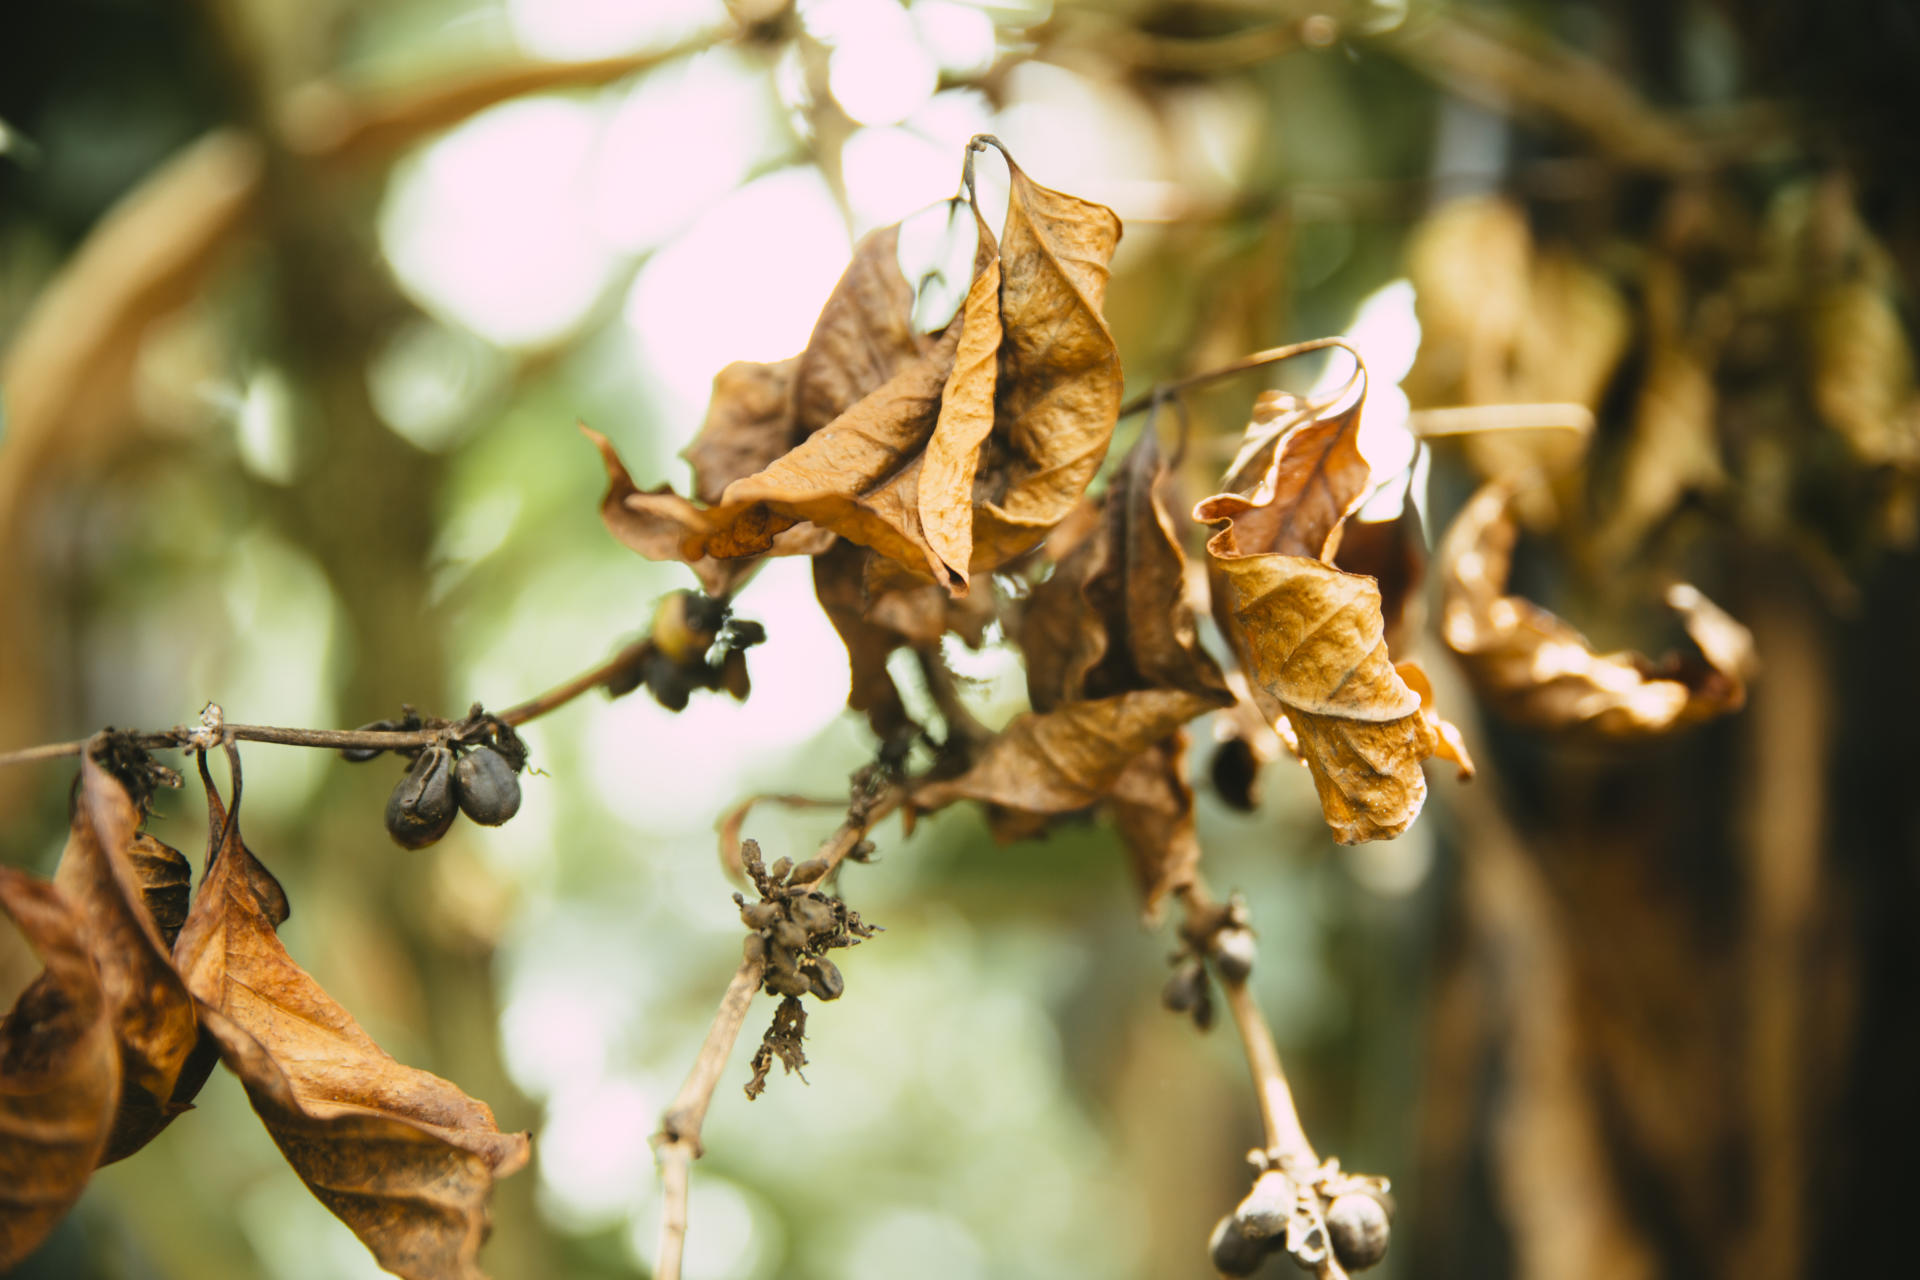 Impact of climate change on coffee